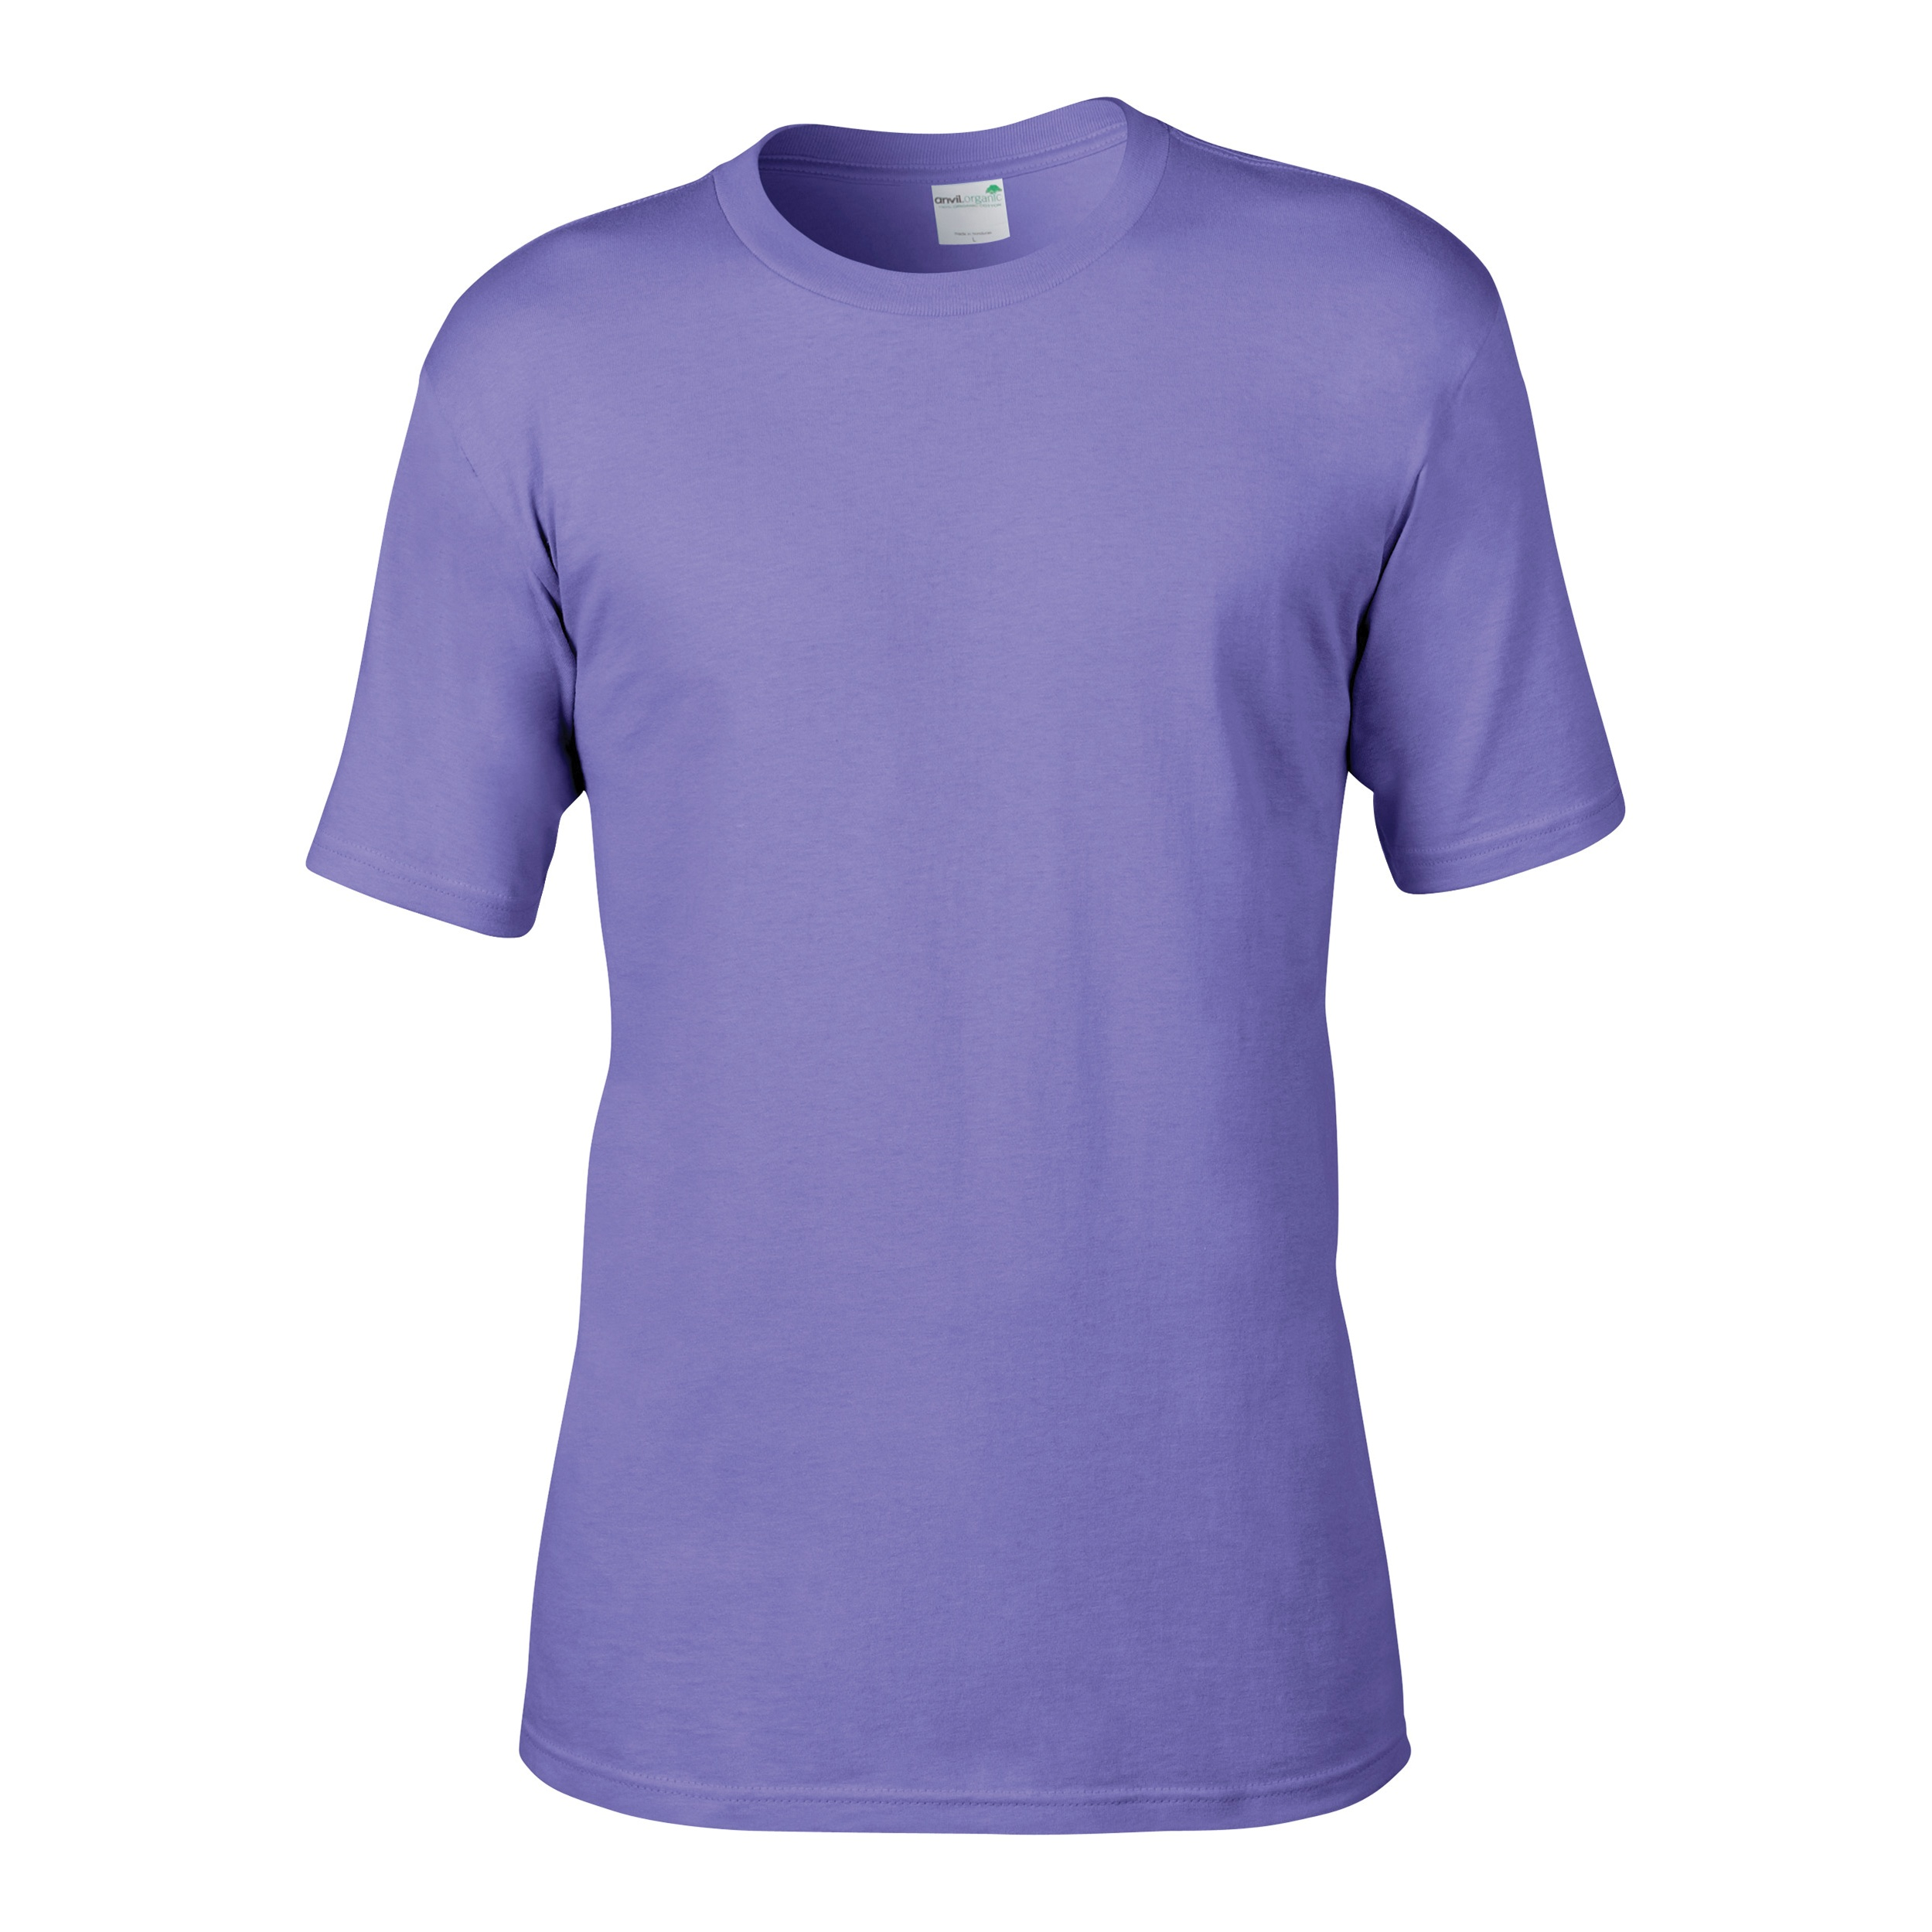 Anvil mens organic tee t shirt ebay for Where are anvil shirts made